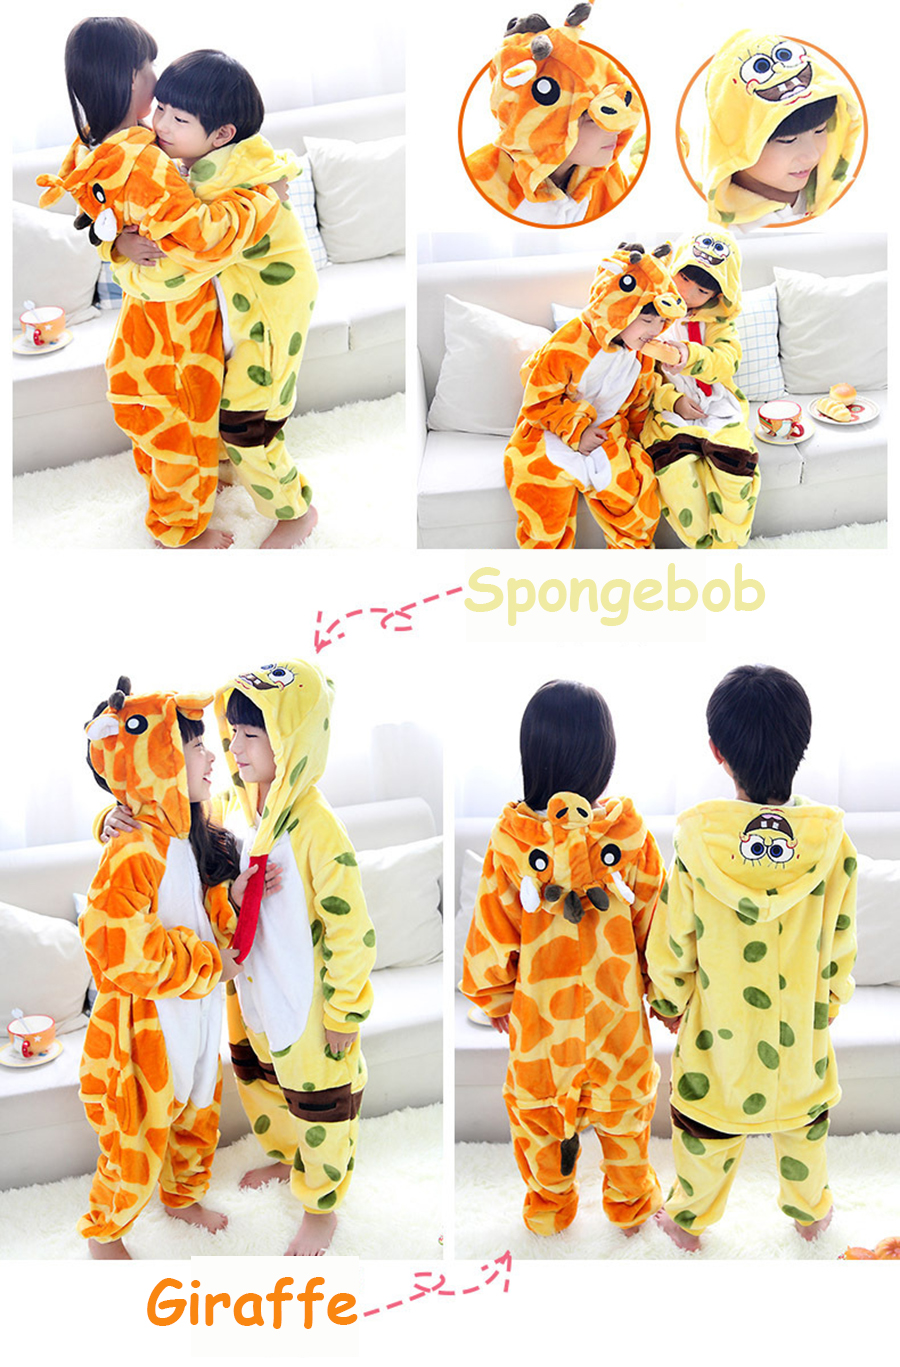 Confirm. Chubby puff stretch the giraffe gund even